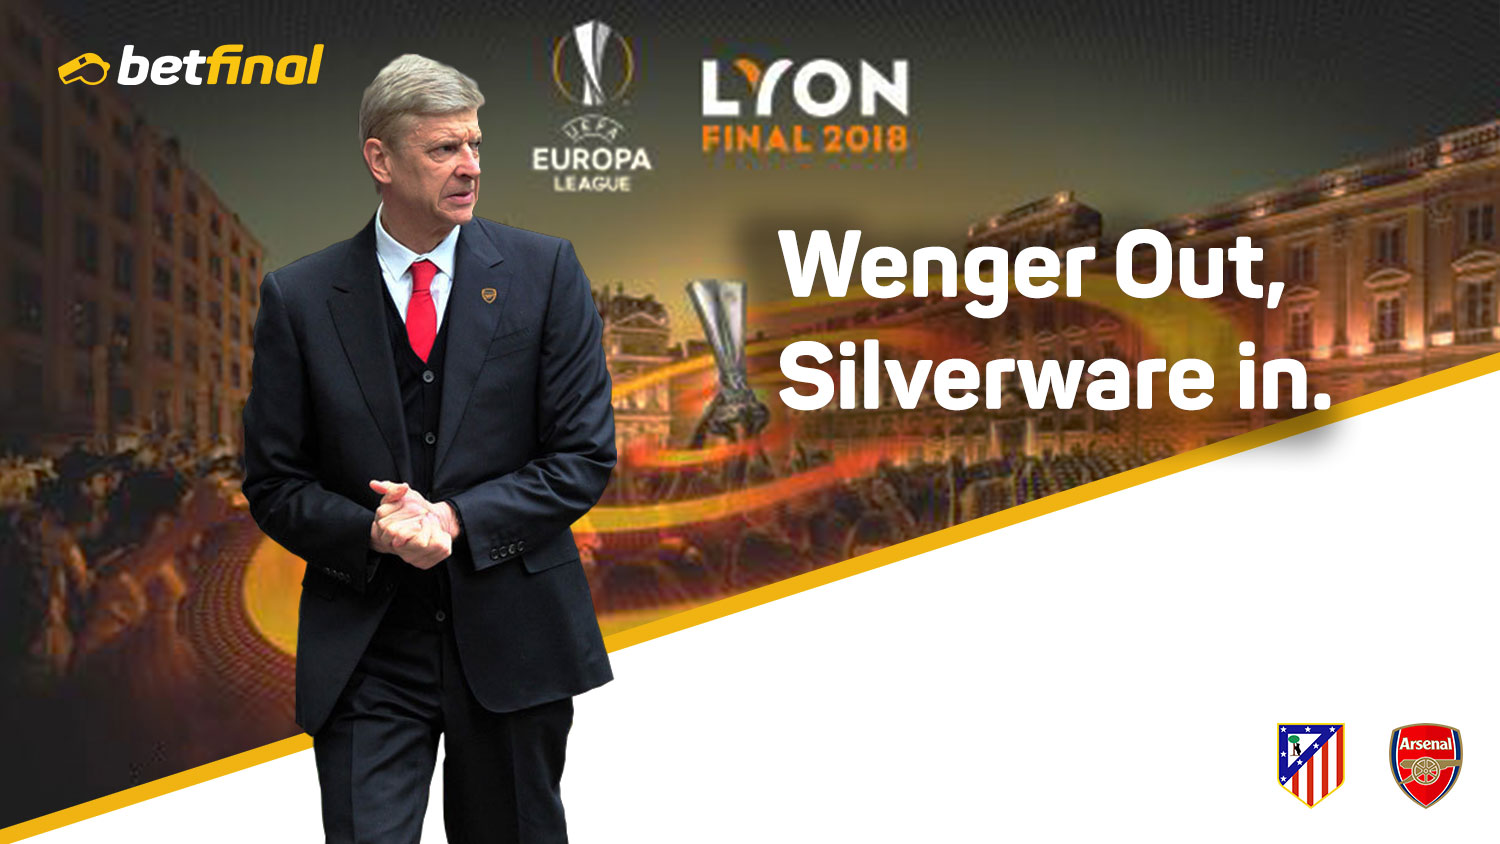 Atletico Madrid (1) Vs Arsenal (1),Thursday 3rd May,  UEFA Europe League – Wenger Out, Silverware in.